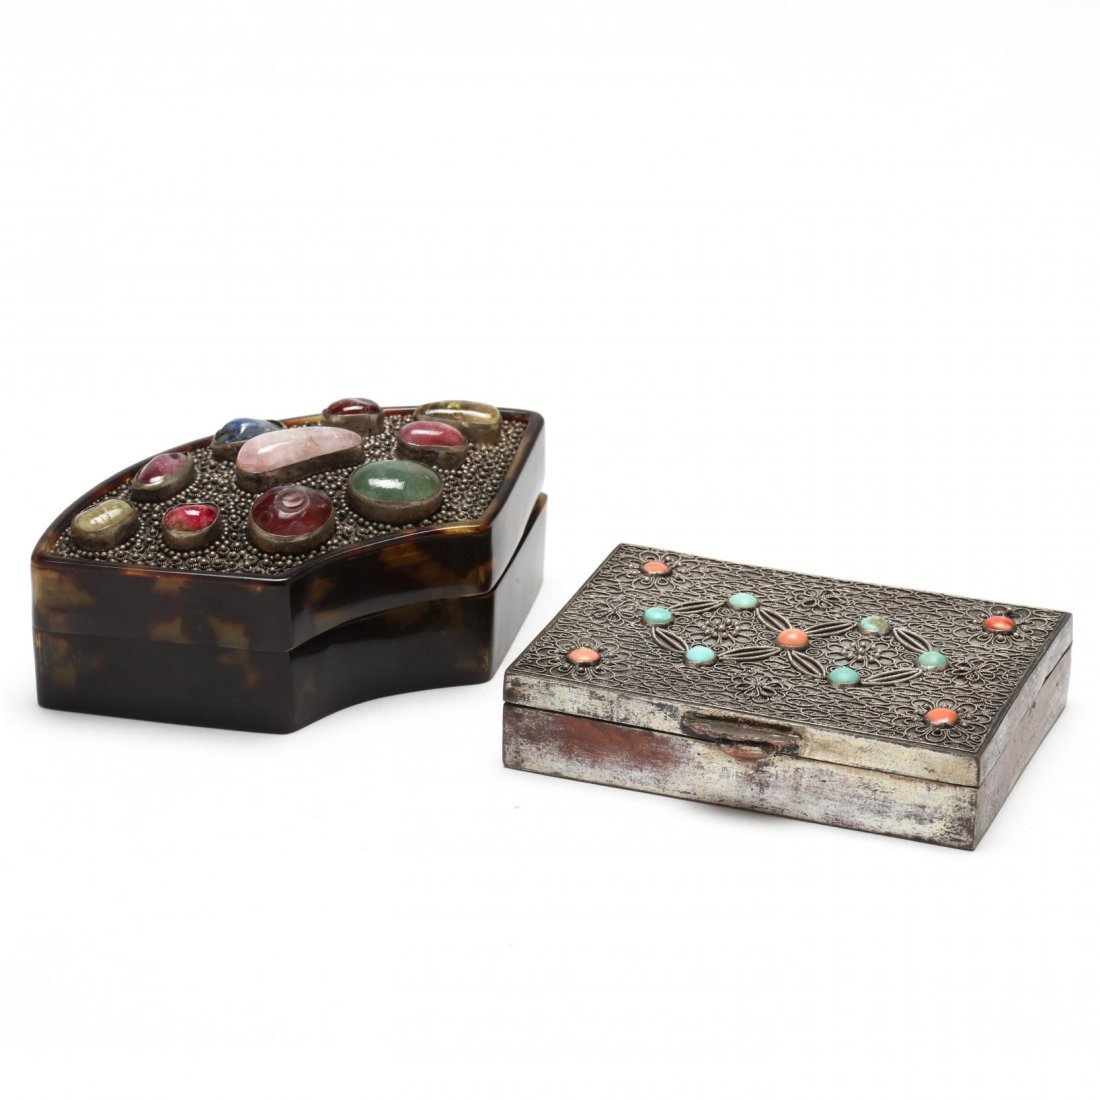 Two Vintage Stone Inlaid Boxes